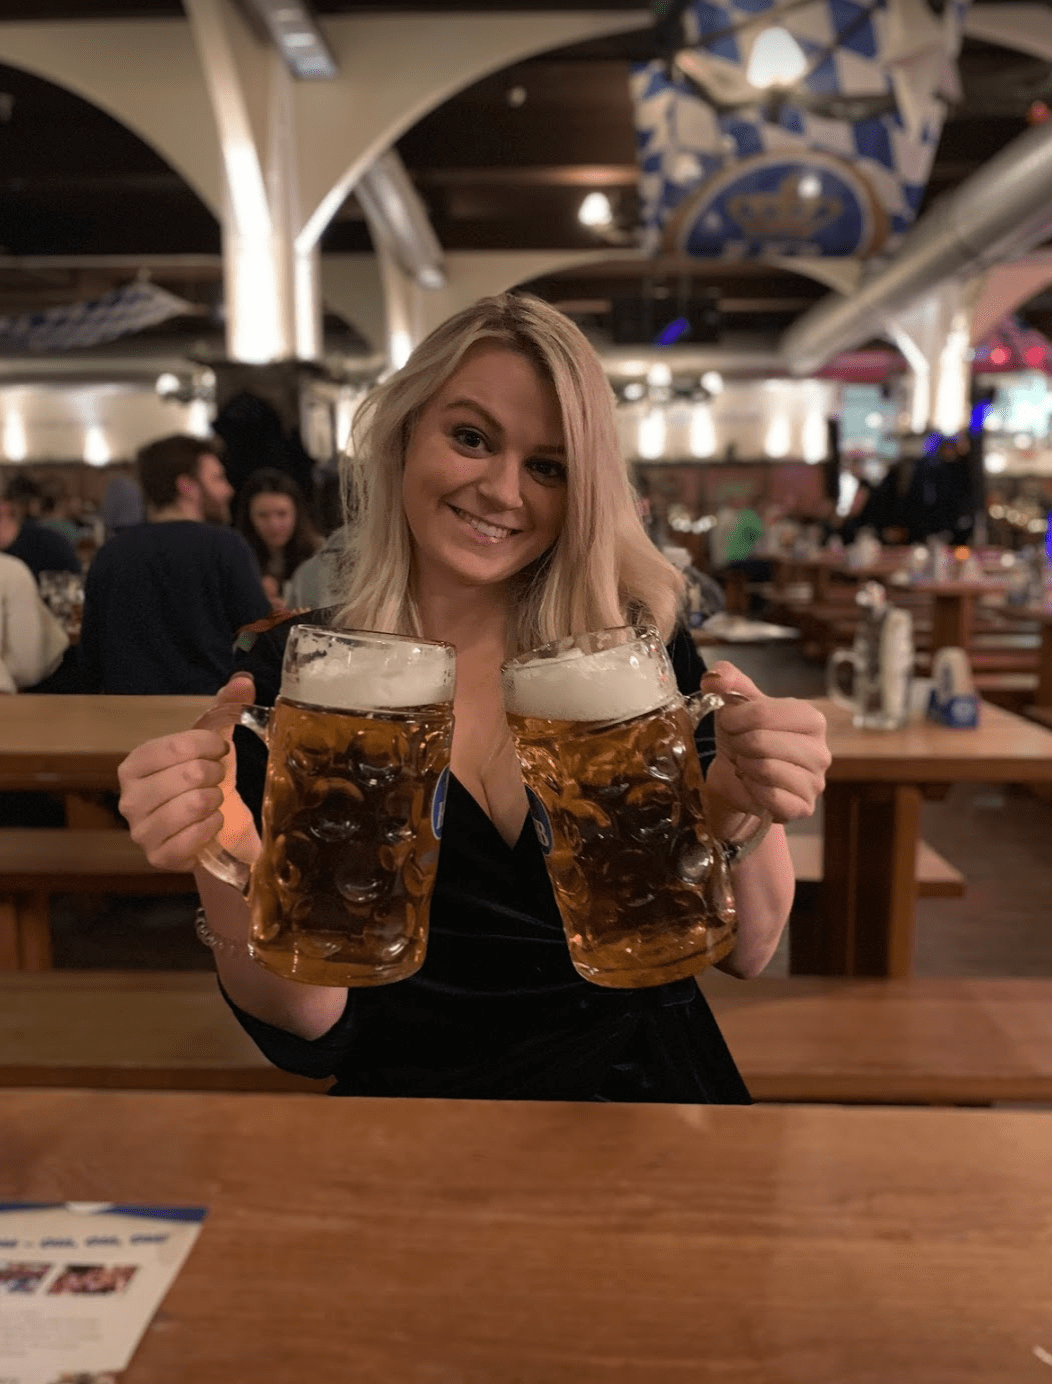 Laura with steins of beer at Hofbräuhaus, Berlin